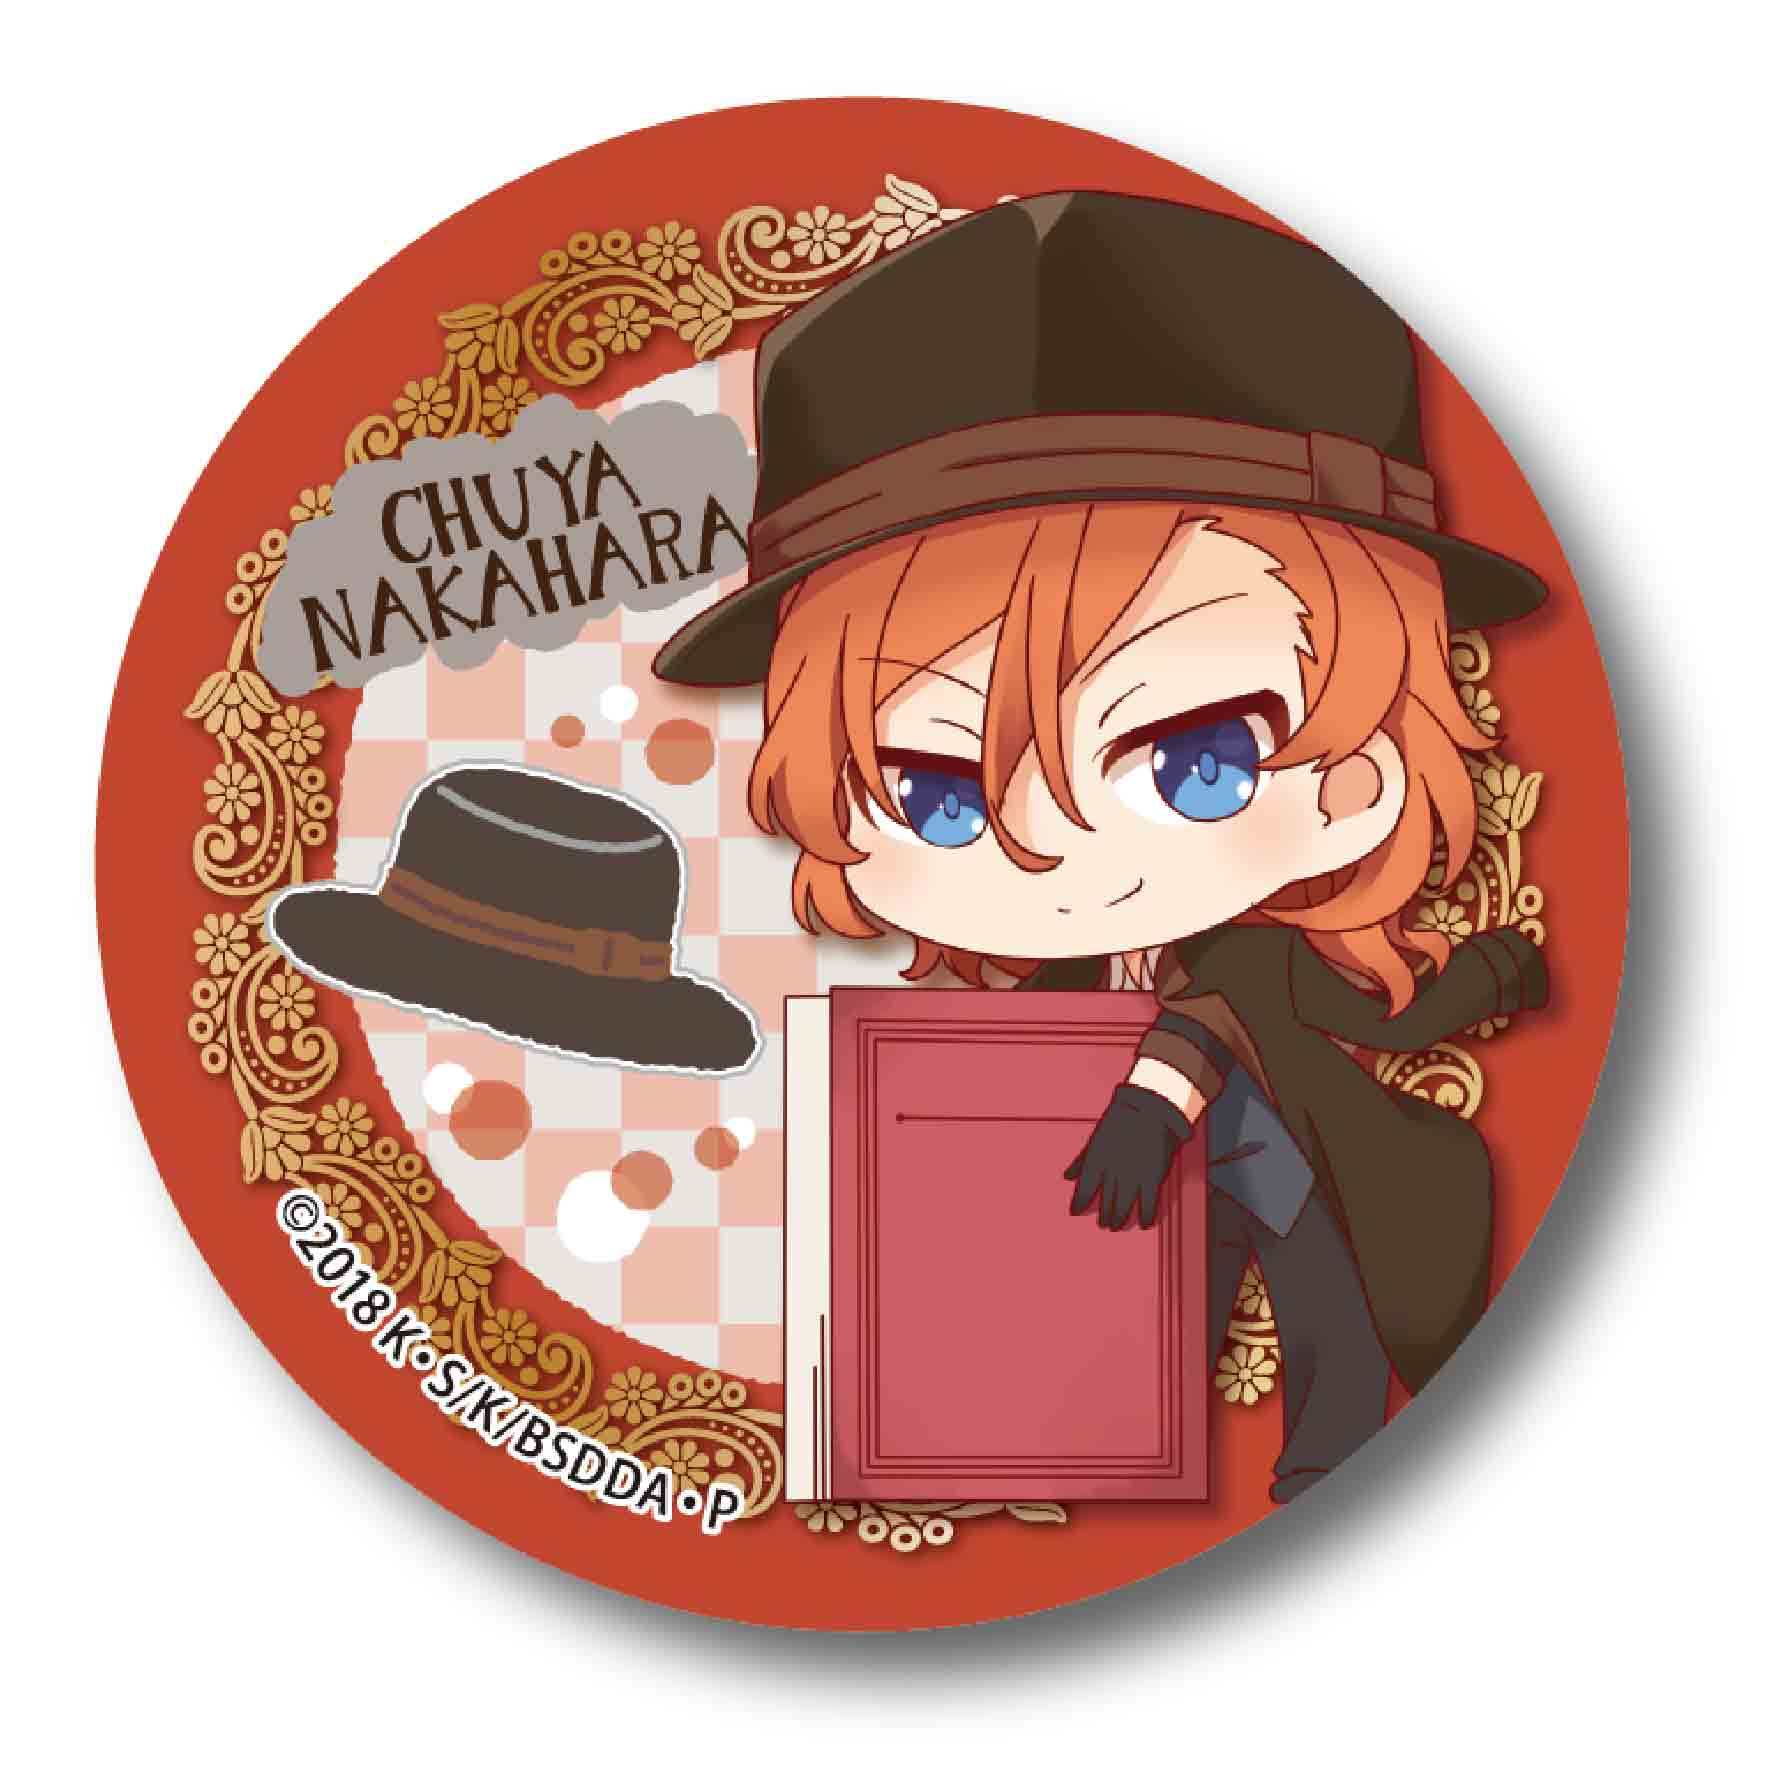 Bungou Stray Dogs DEAD APPLE GyuGyutto Can Badge Nakahara Chuya ... 901af023ceddb